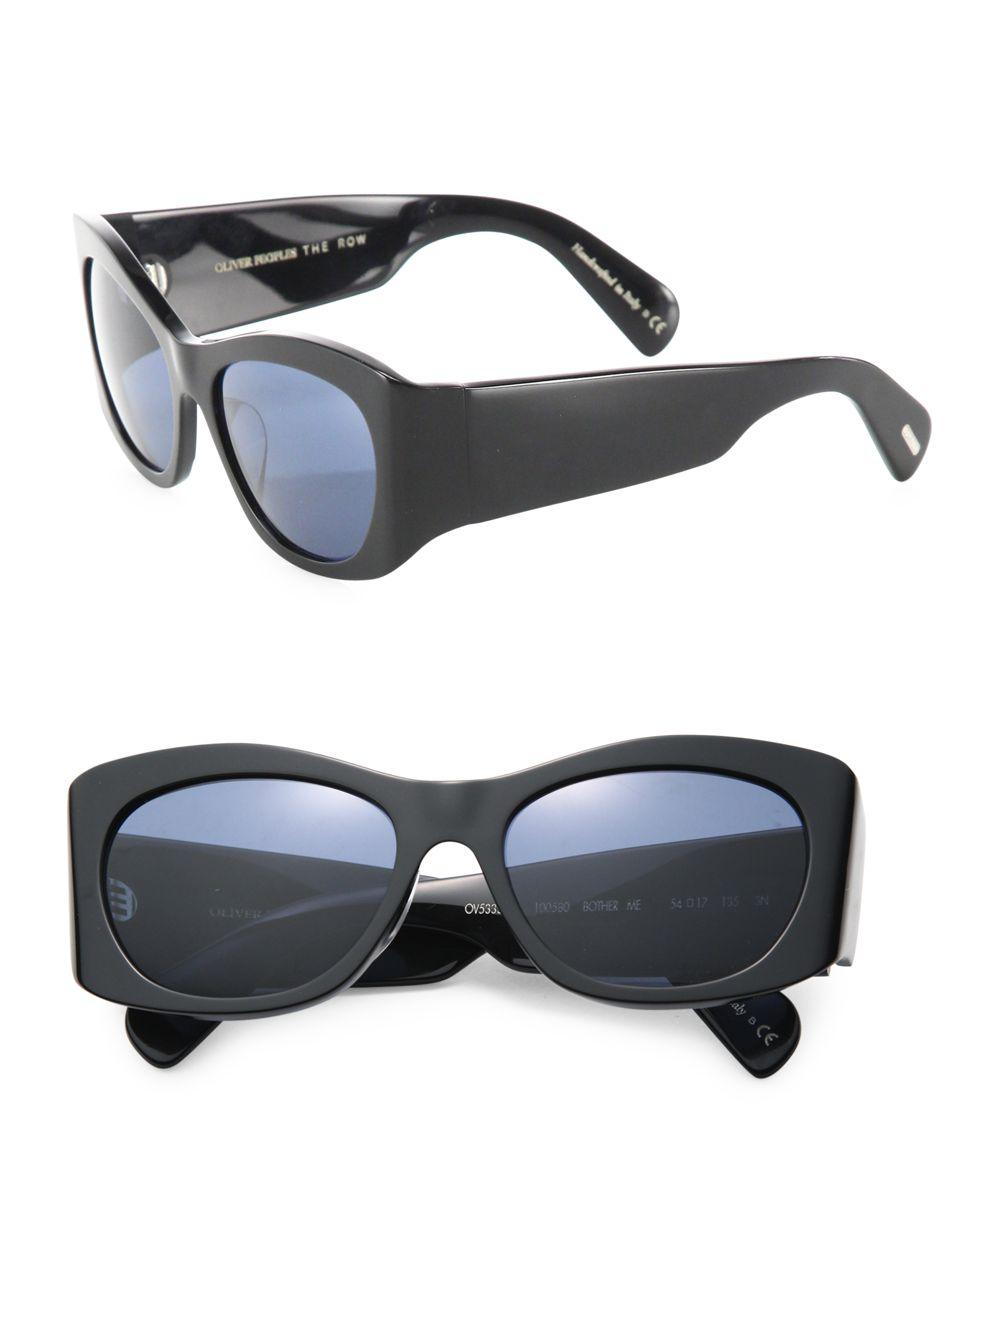 840791c424 Oliver Peoples Don t Bother Me 54mm Cat Eye Sunglasses in Black for ...